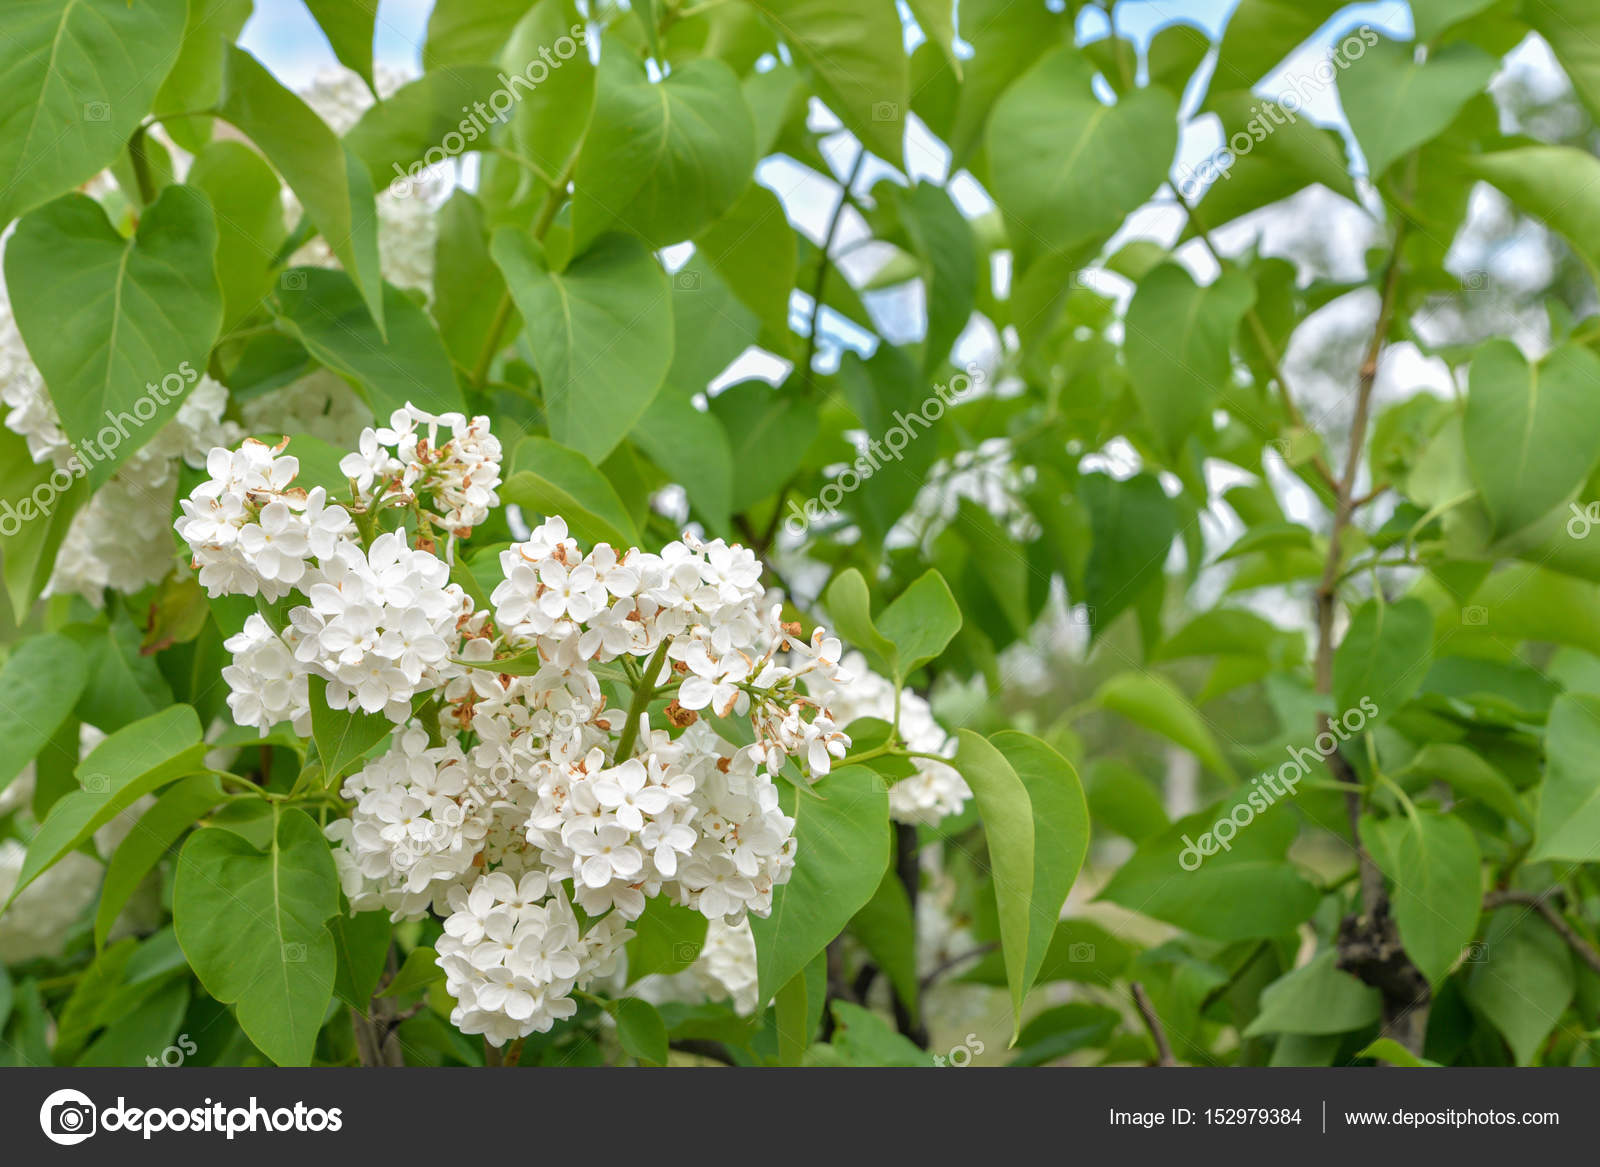 Background Branch Of A Tree With White Flowers Against A